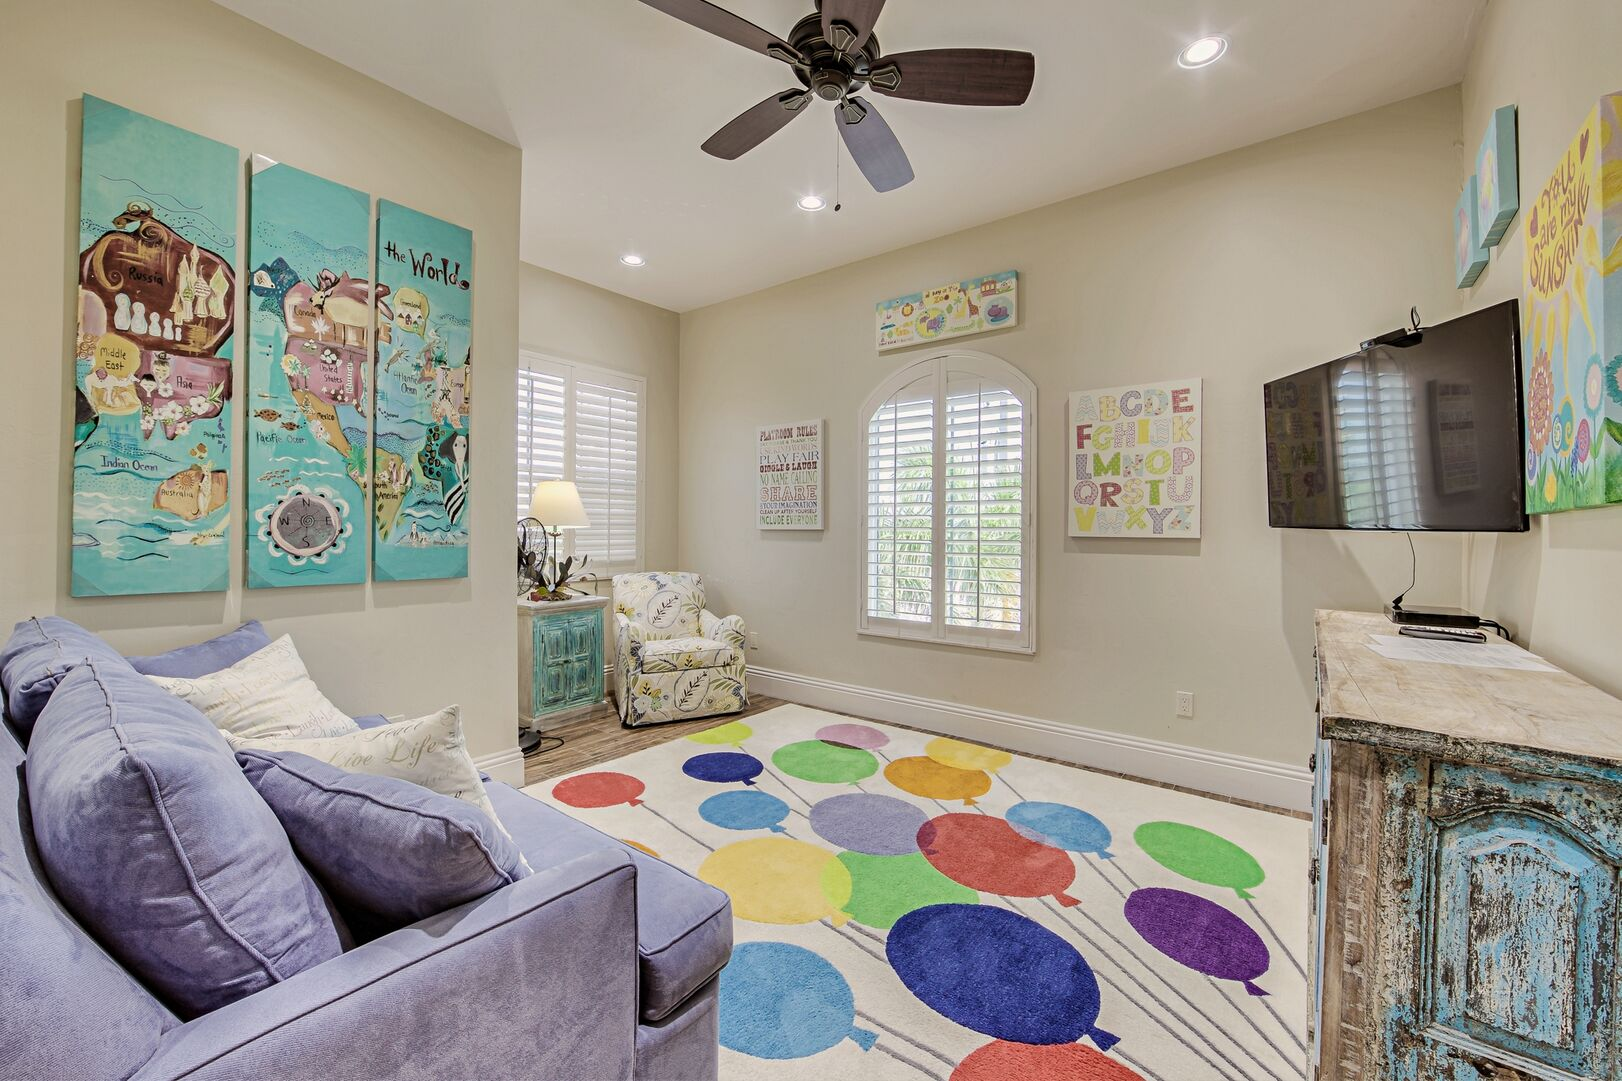 Children's Room with Sofas, TV, Dresser, and Ceiling Fan.